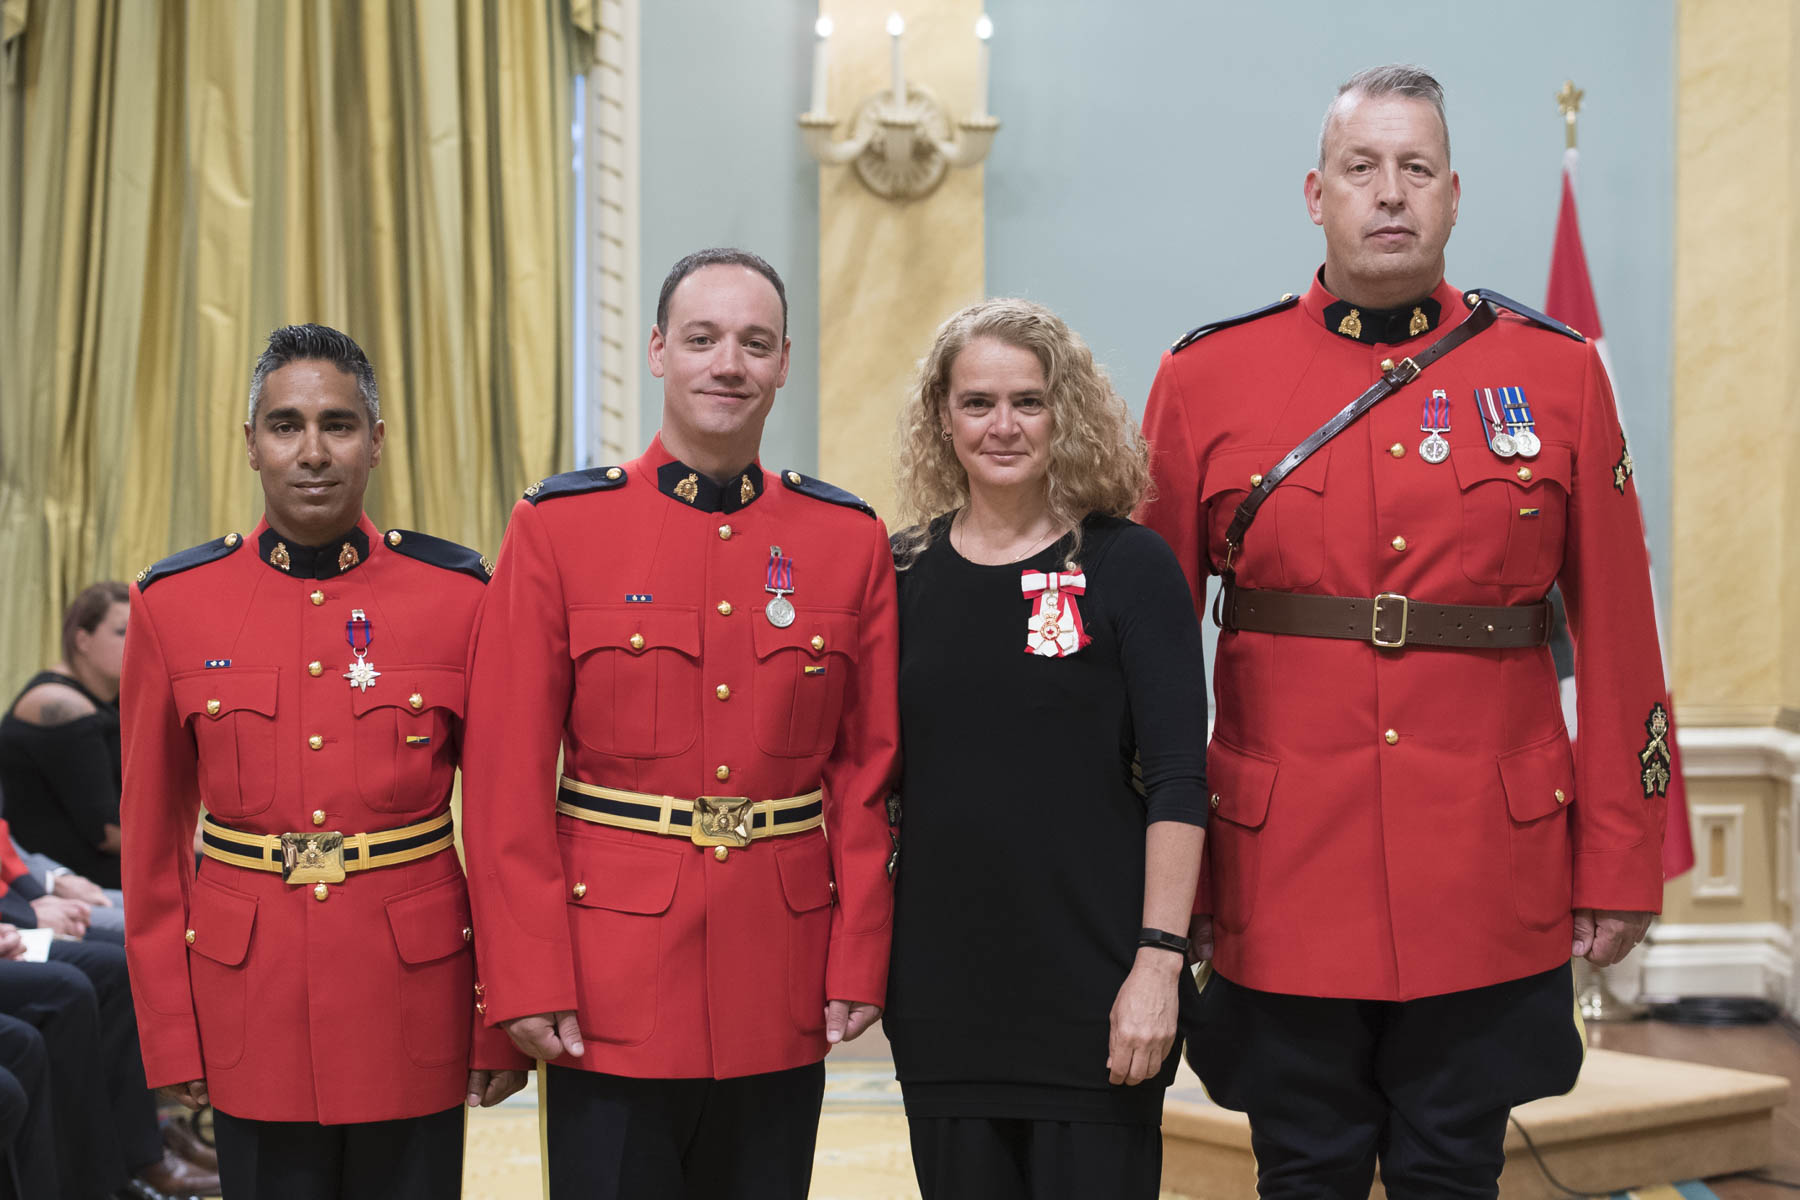 RCMP constables Sidney Gaudette and Sheldon Shah, along with Sergeant Gregory Gerbrandt received a Decoration for Bravery. On February 7, 2012, they came under fire while executing a search warrant at a farmhouse near Sedgewick, Alberta. Despite being struck by several bullets, Constable Shah provided cover for an injured Constable Gaudette and continued to defend himself against the gunman until both officers were outside, whereupon he collapsed. Covered by Constable Gaudette, Sergeant Gerbrandt exposed himself to fire and pulled Constable Shah to safety, before taking his wounded colleagues to a nearby hospital.